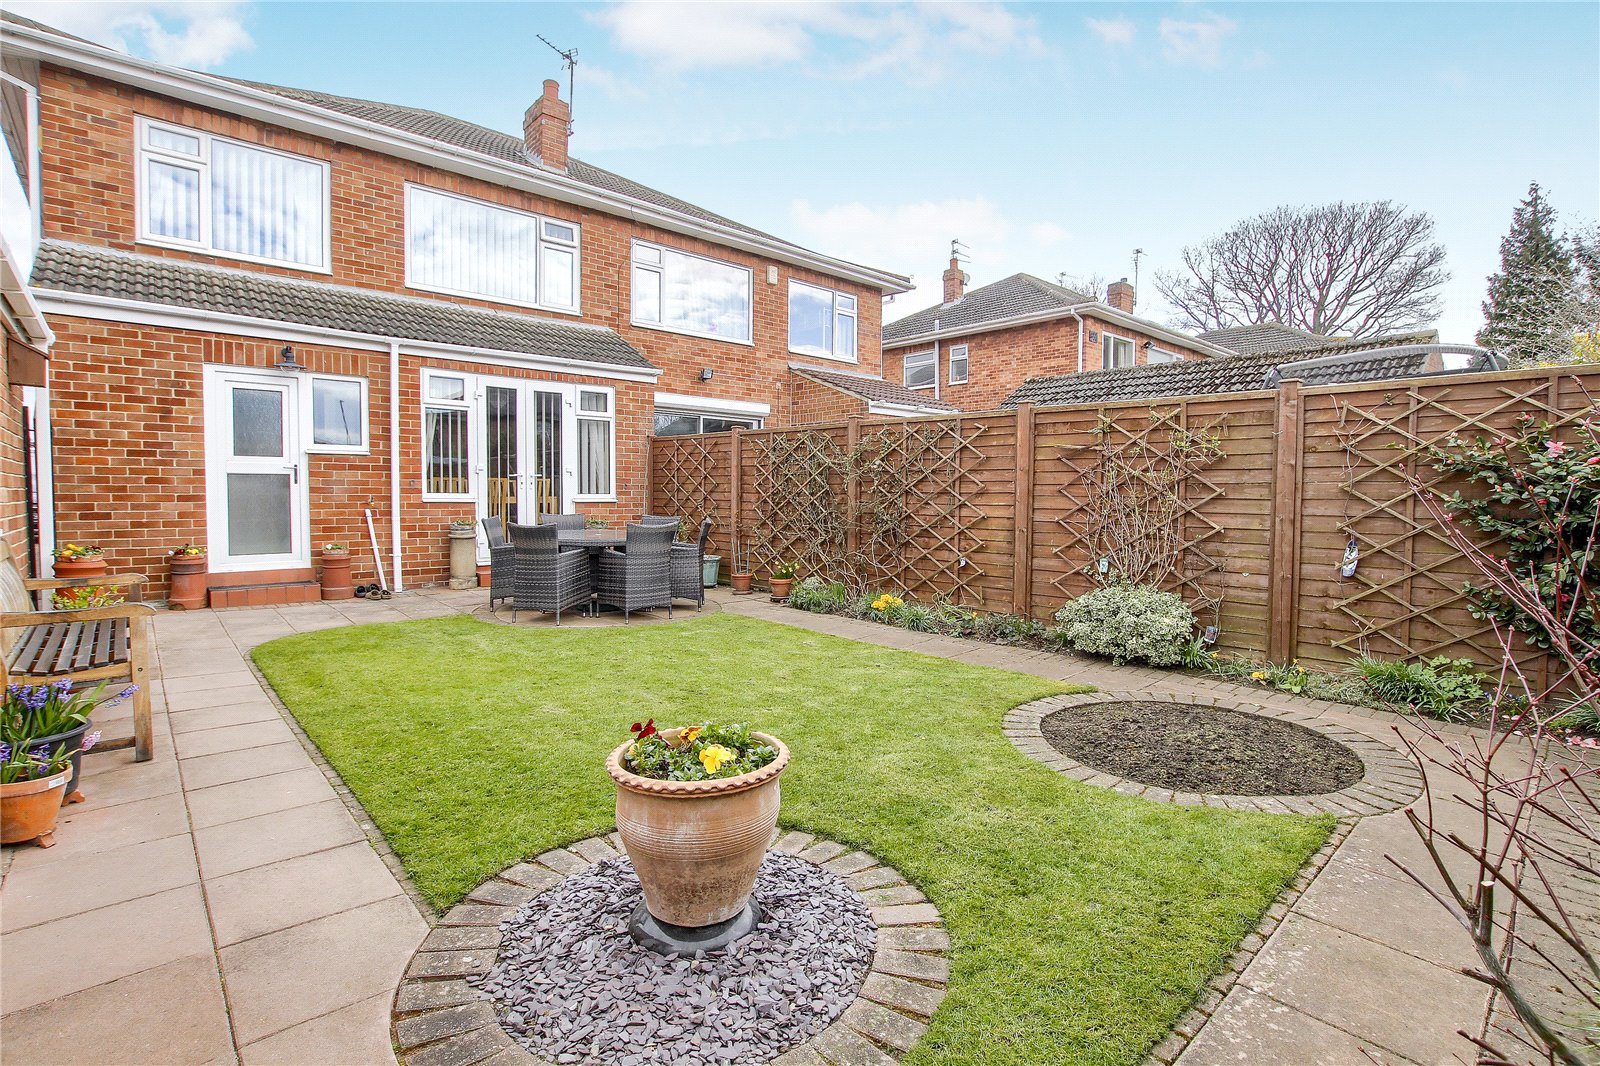 4 bed house for sale in Oldford Crescent, Acklam  - Property Image 4